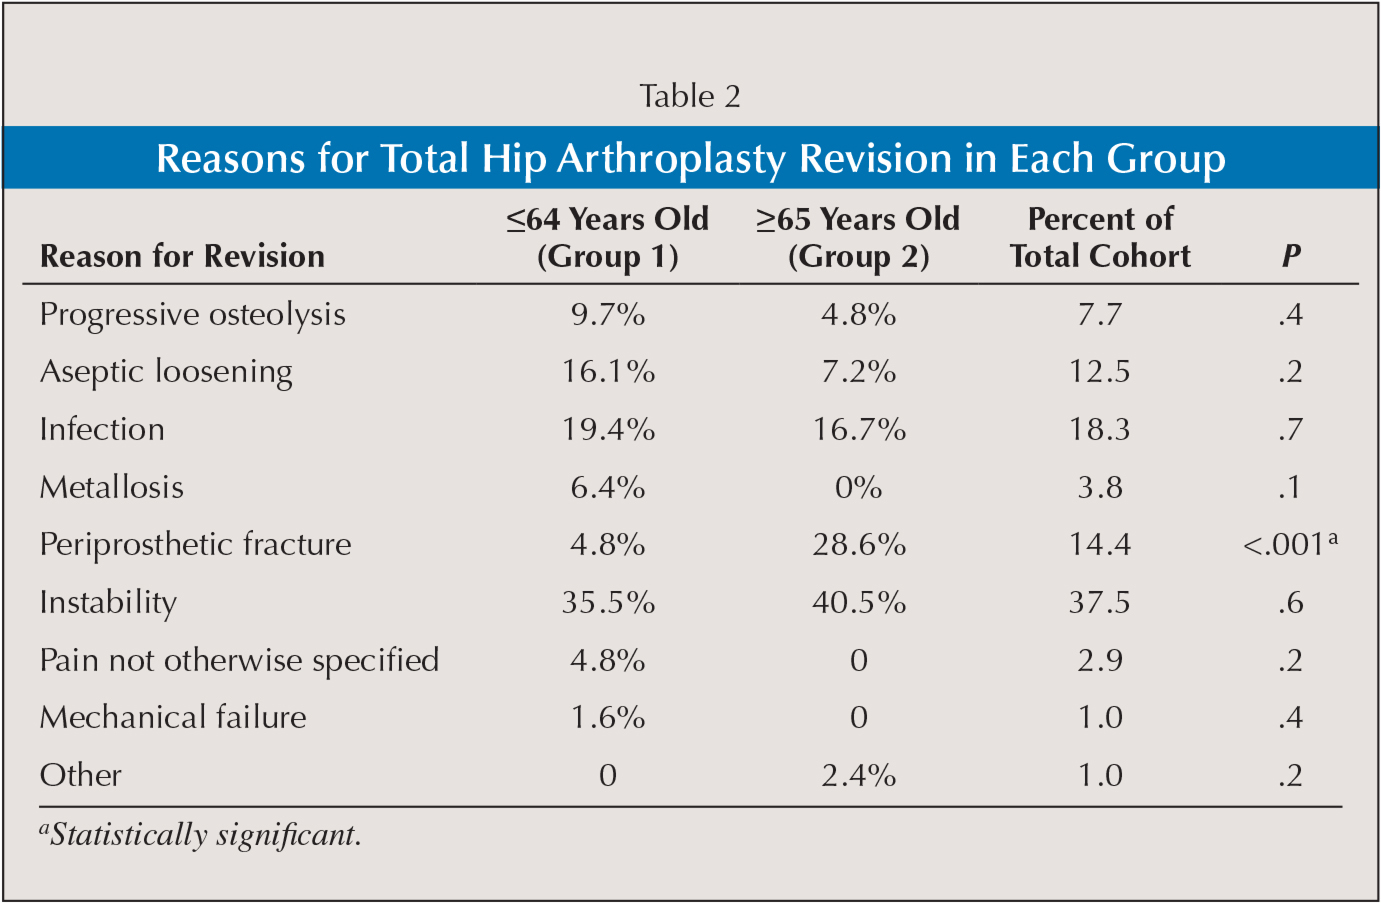 Reasons for Total Hip Arthroplasty Revision in Each Group